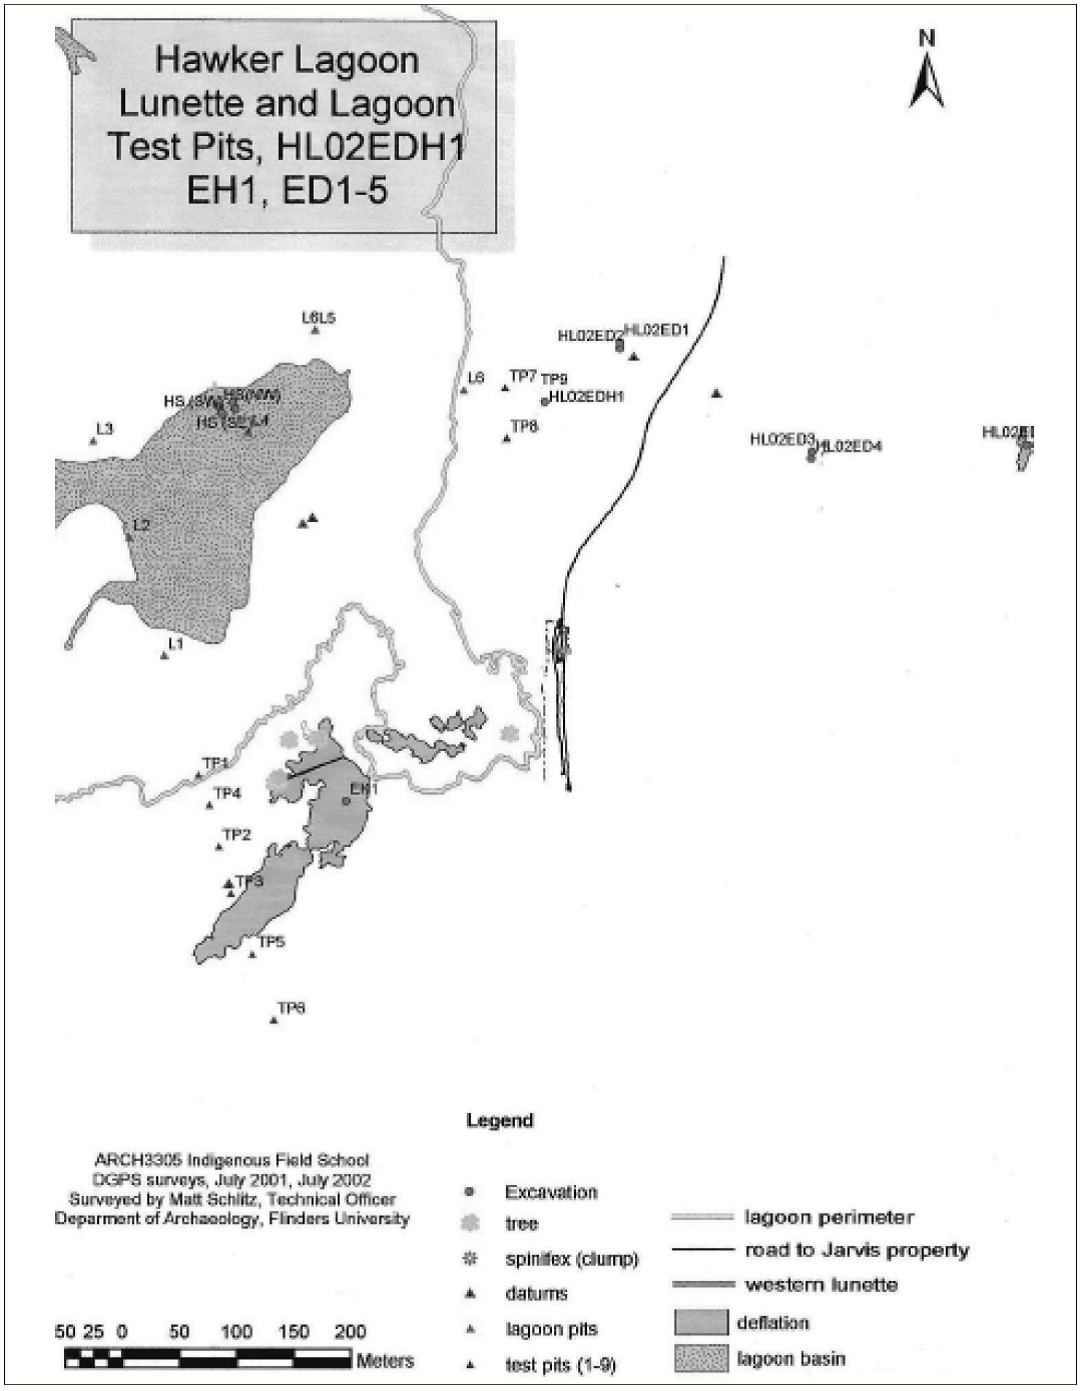 Hawker Lagoon lunette and location of test pits (published in Australian Archaeology 60:27).